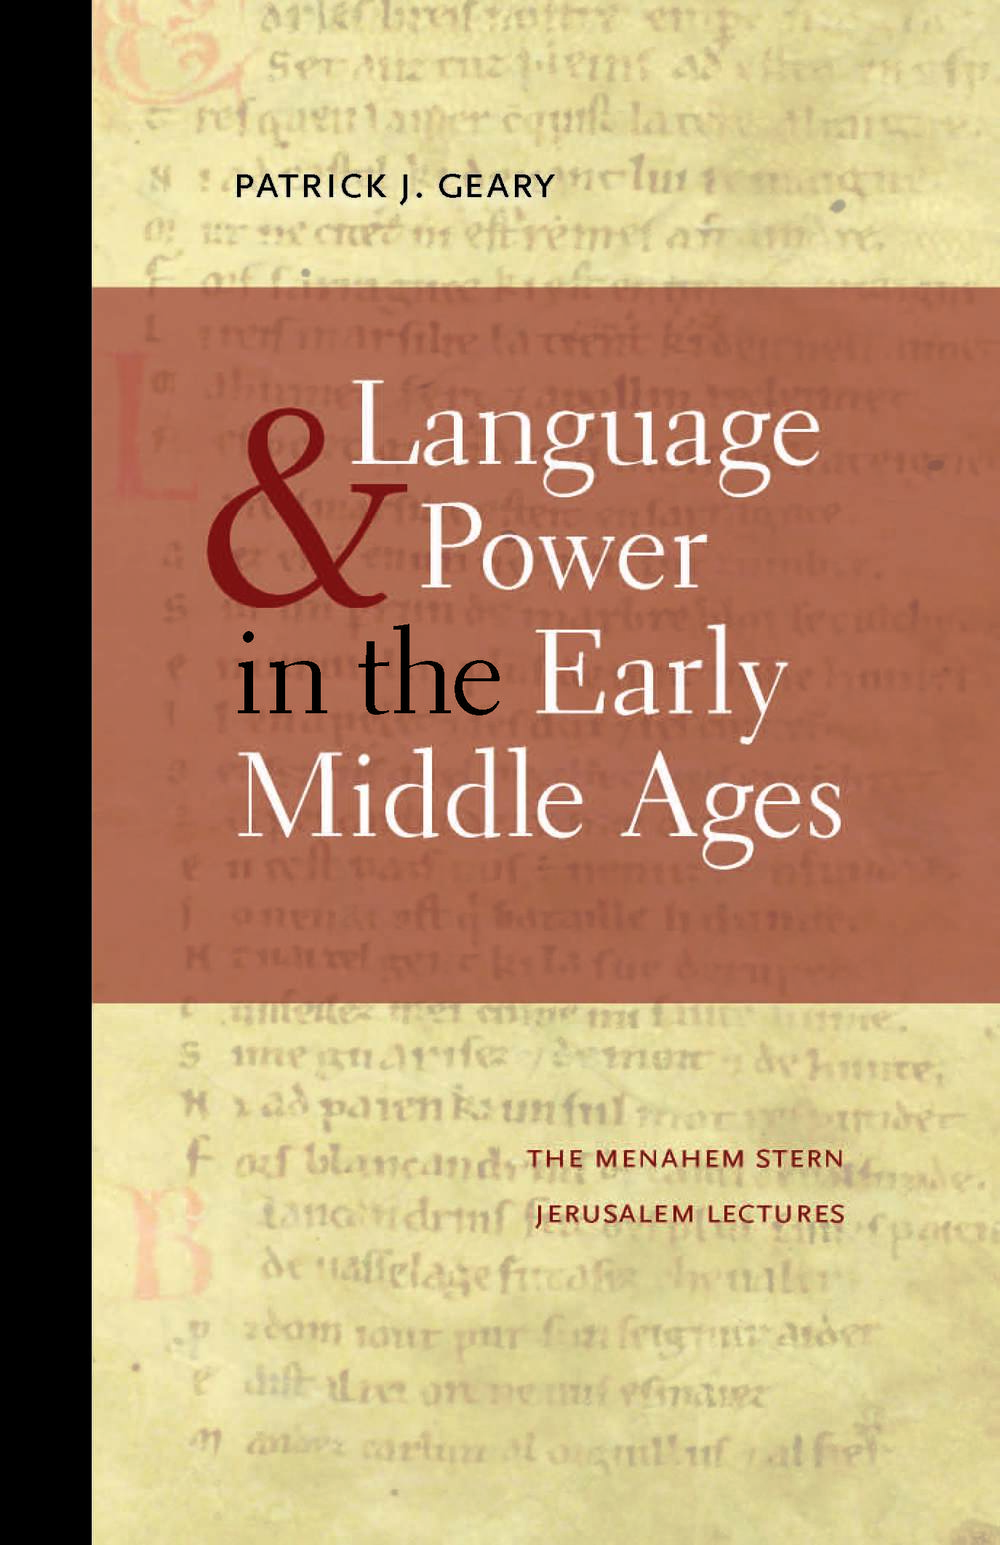 Language & Power in the Middle Ages , Patrick Geary |  University Press of New England